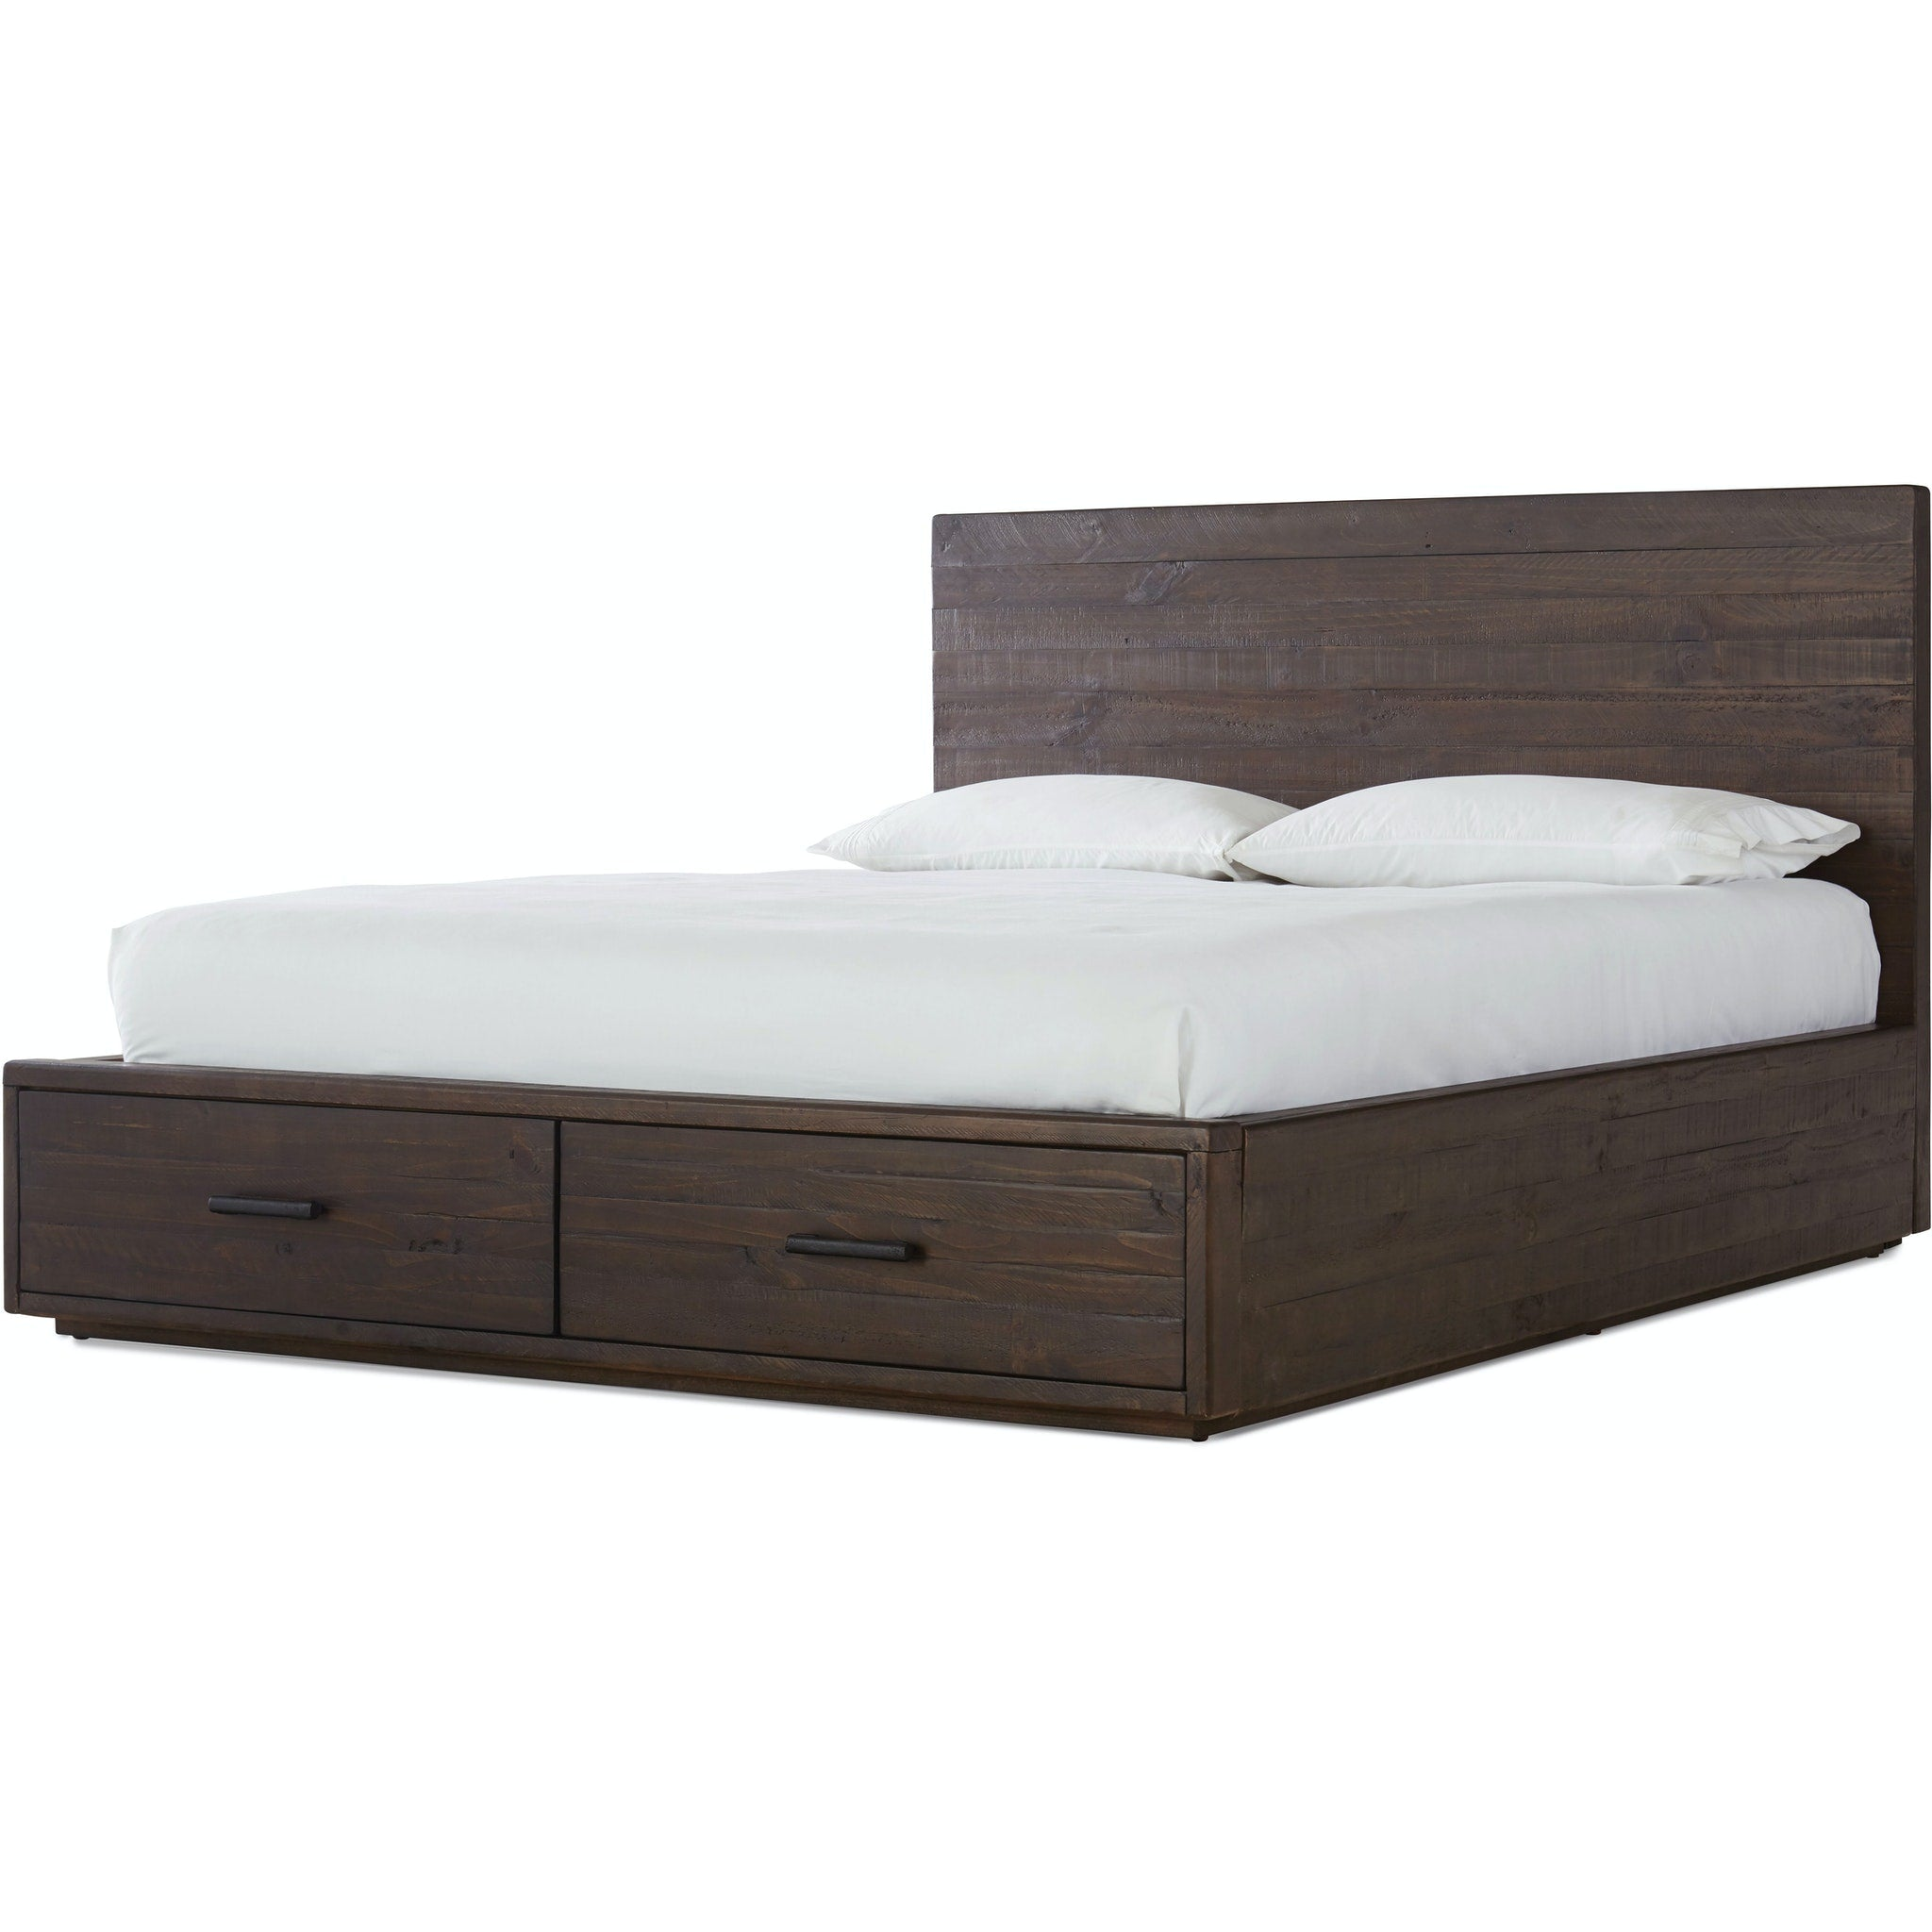 McKinney Full-Size Solid Wood Storage Bed in Rustic Latte